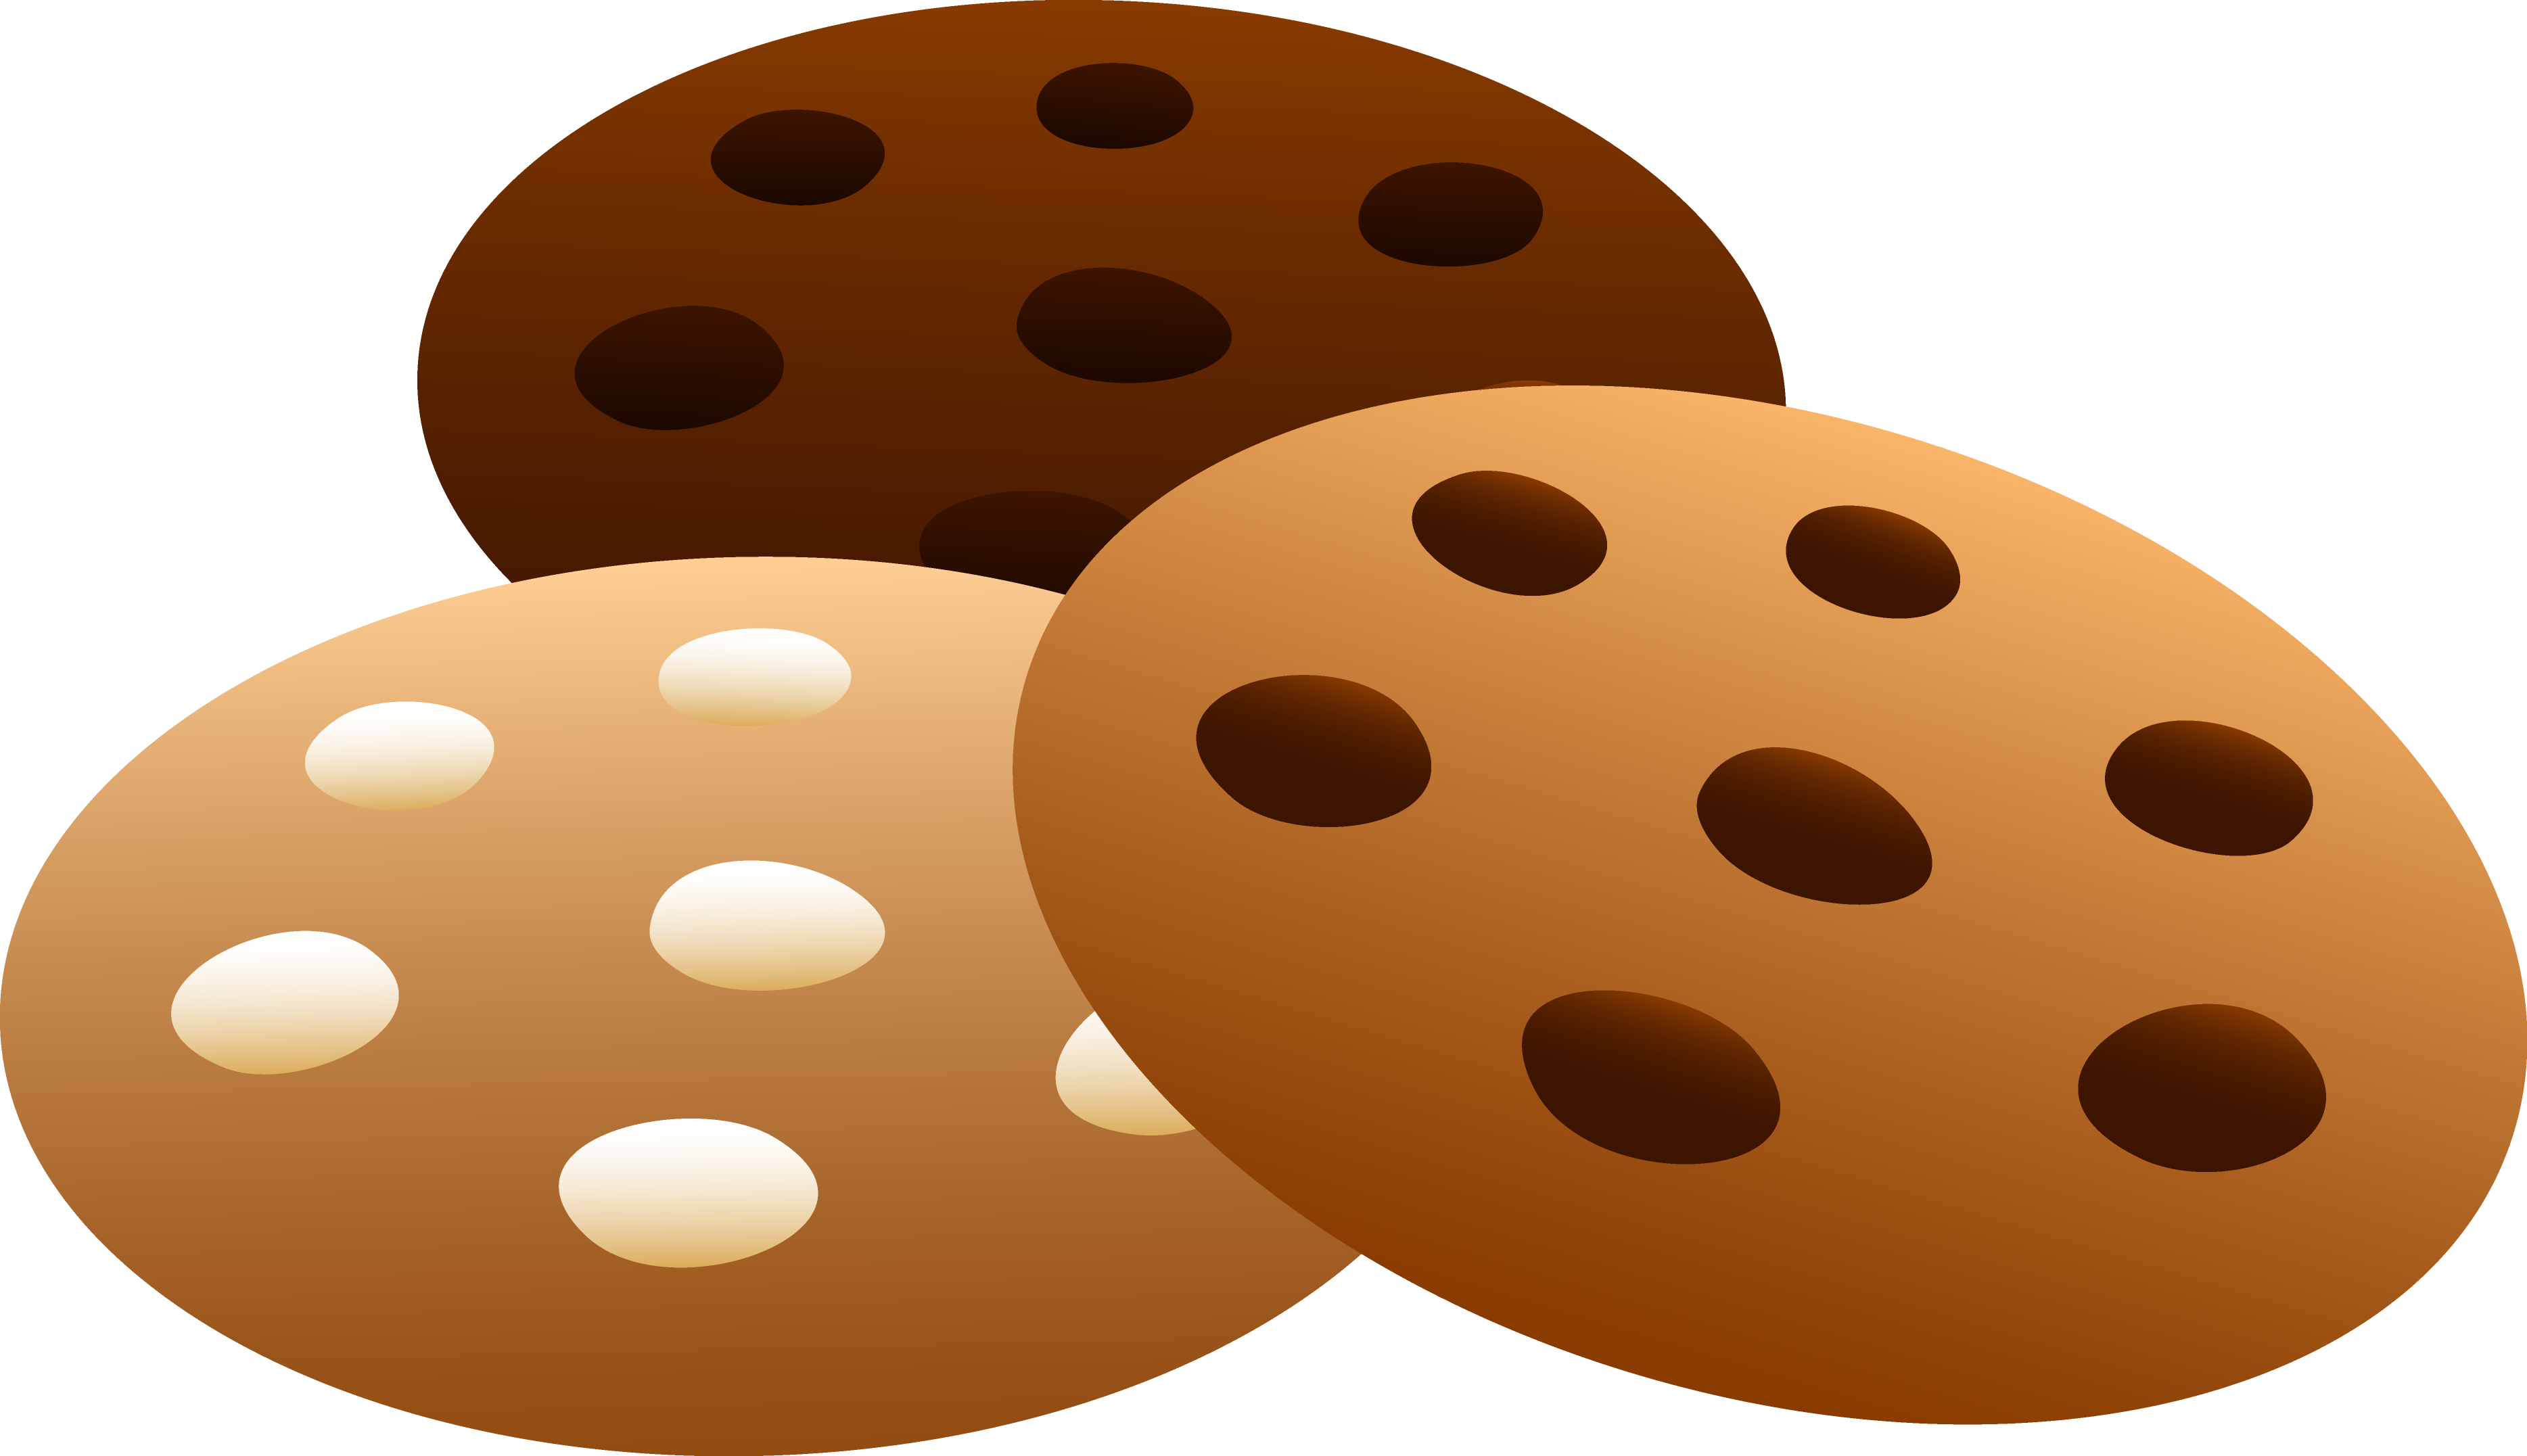 Cookie vector png. Macadamia nut clipart